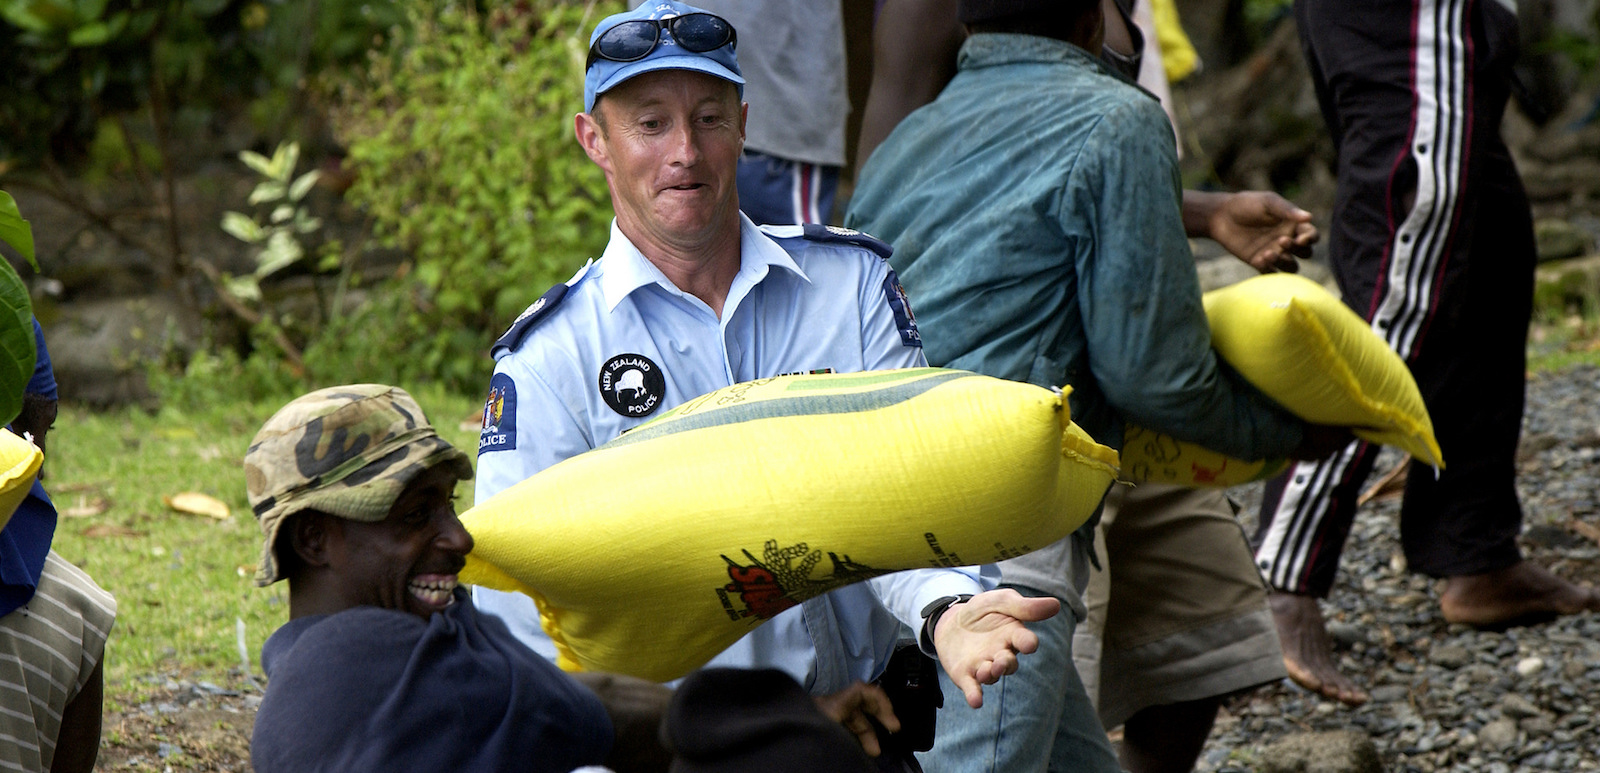 New Zealand police assisting with delivery of AusAID supplies, Solomon Islands, 2003 (Photo: Gary Ramage, Australian Defence/Flickr)